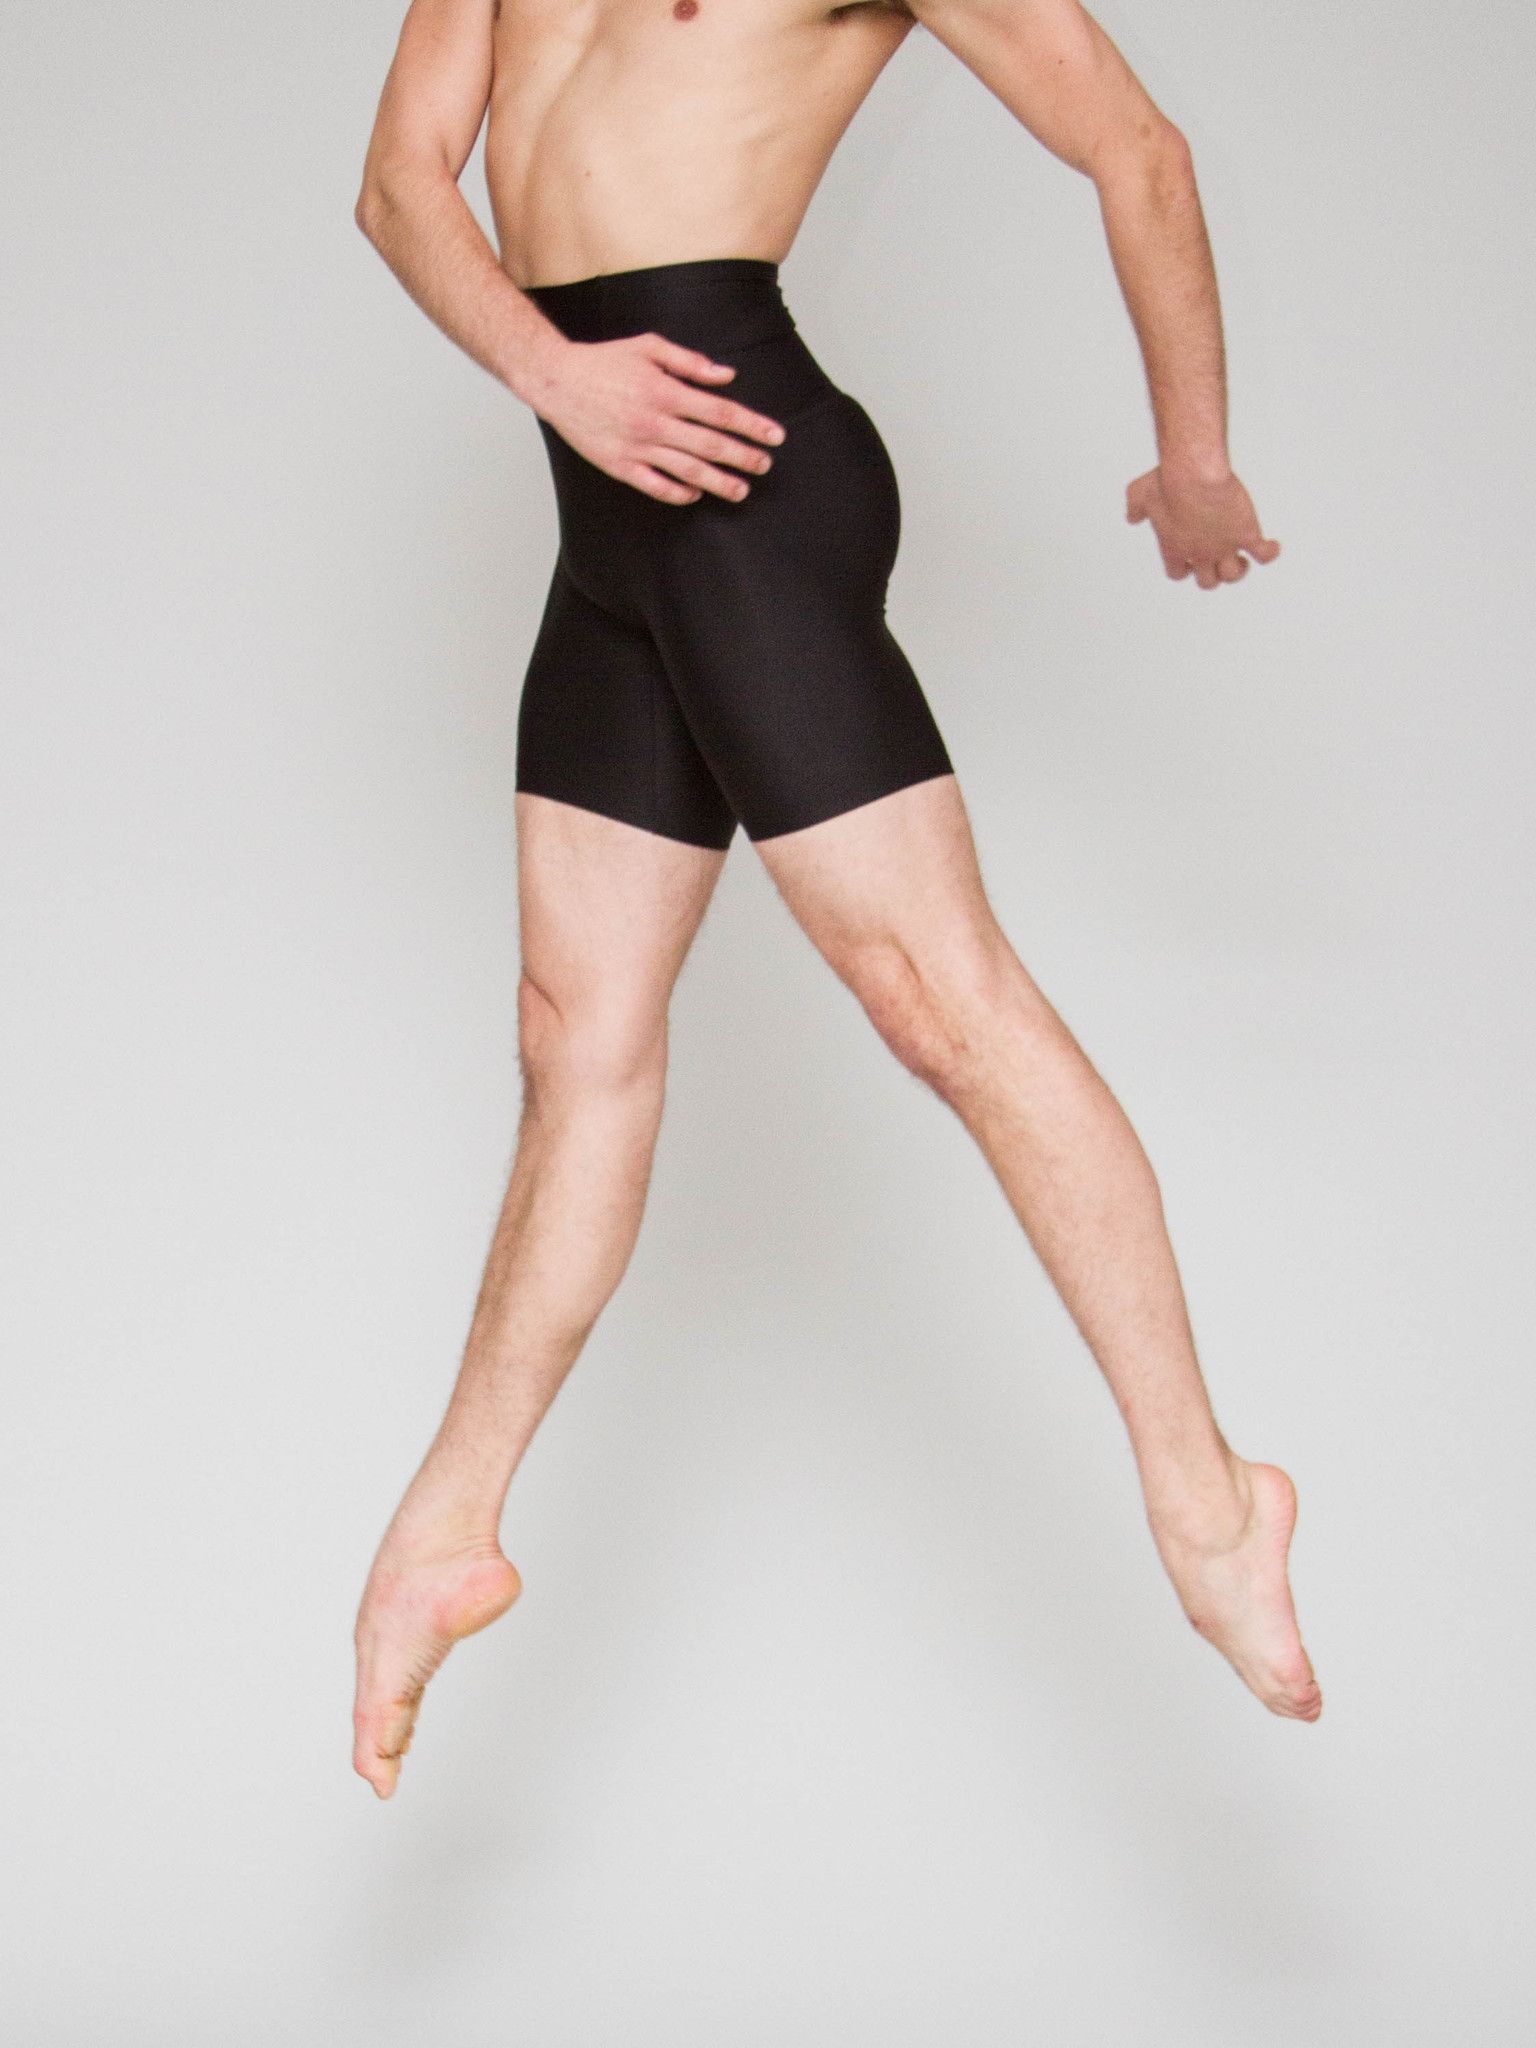 718039fcd Precision Fit Shorts - MENS | Men's and Boys' Dancewear ...